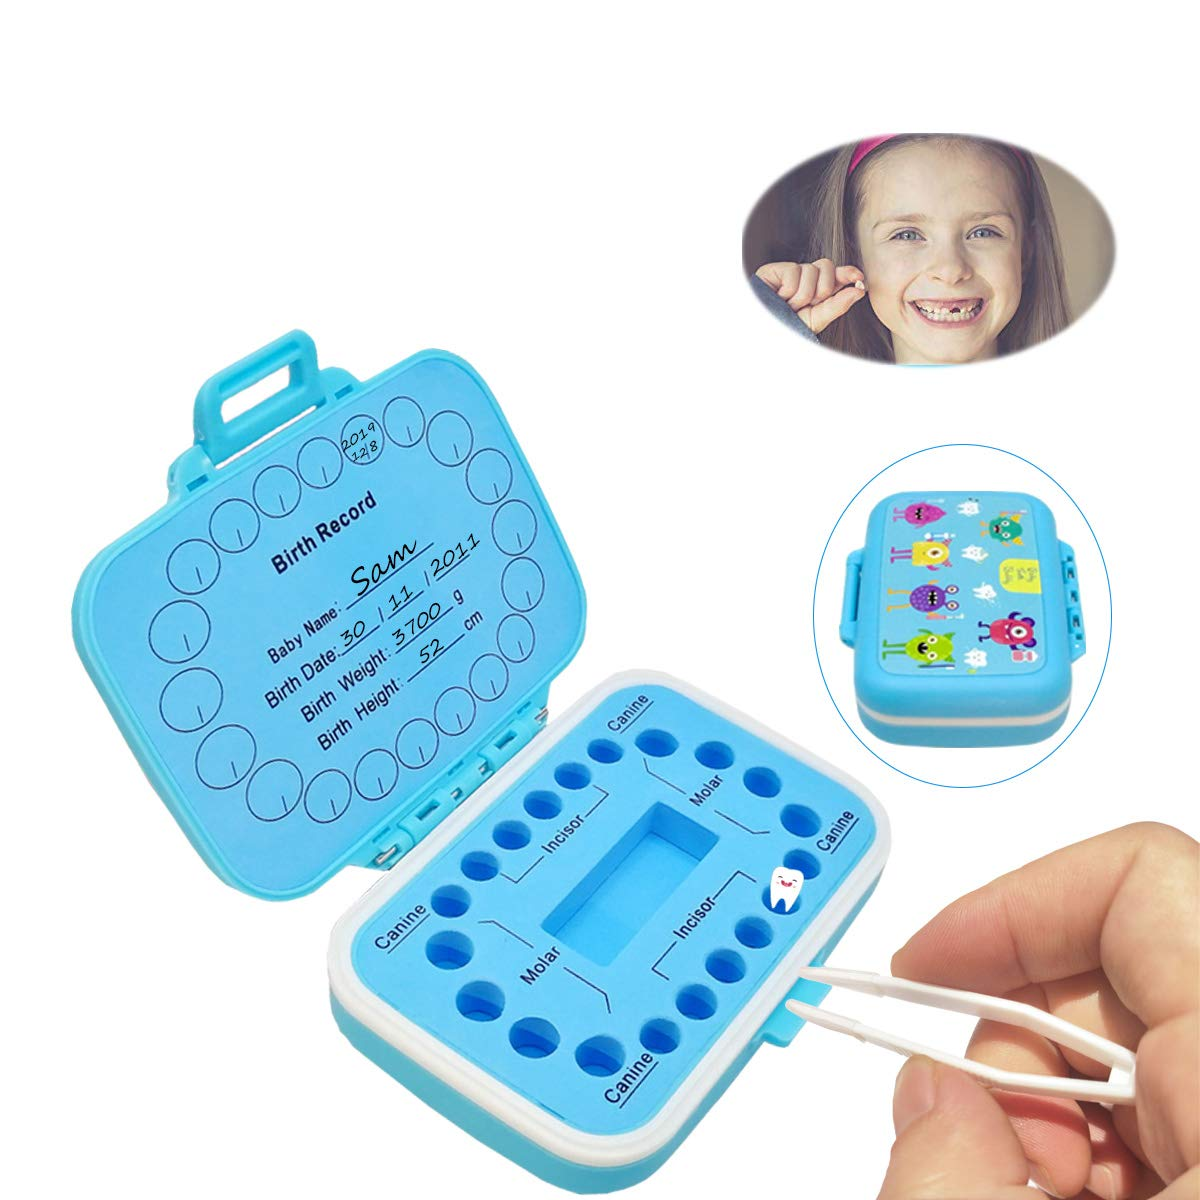 Blue+Blue Tooth Box,Tooth Fairy Box,Kids Keepsake Box,Organizer Gift for Baby Teeth,Kids Deciduous Teeth Collection, Save Children Teeth to Keep The Childhood Memory/…